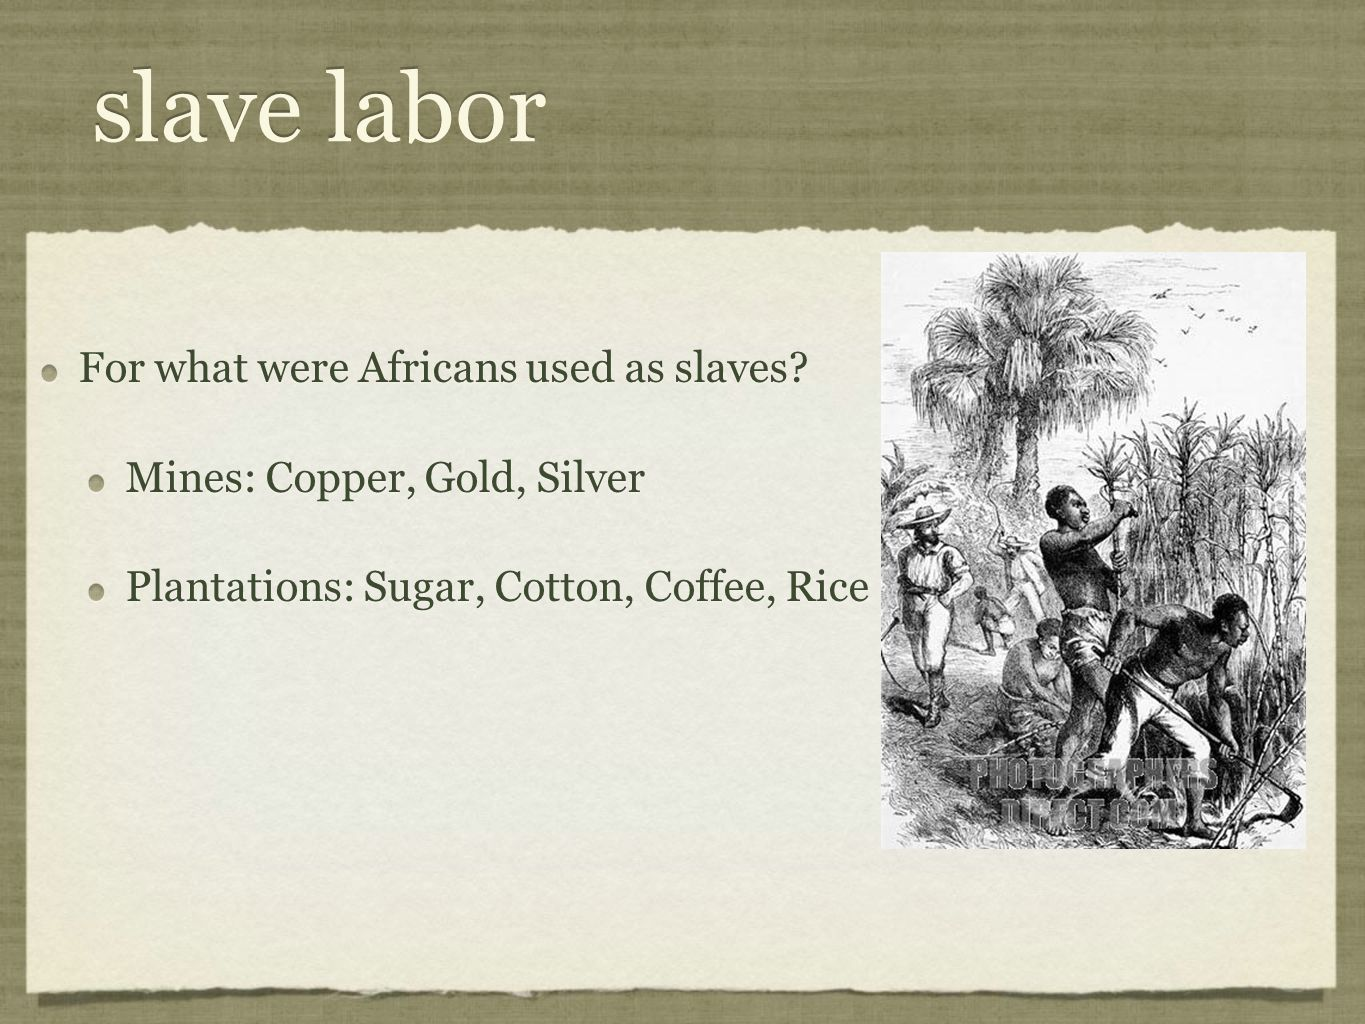 slave labor For what were Africans used as slaves